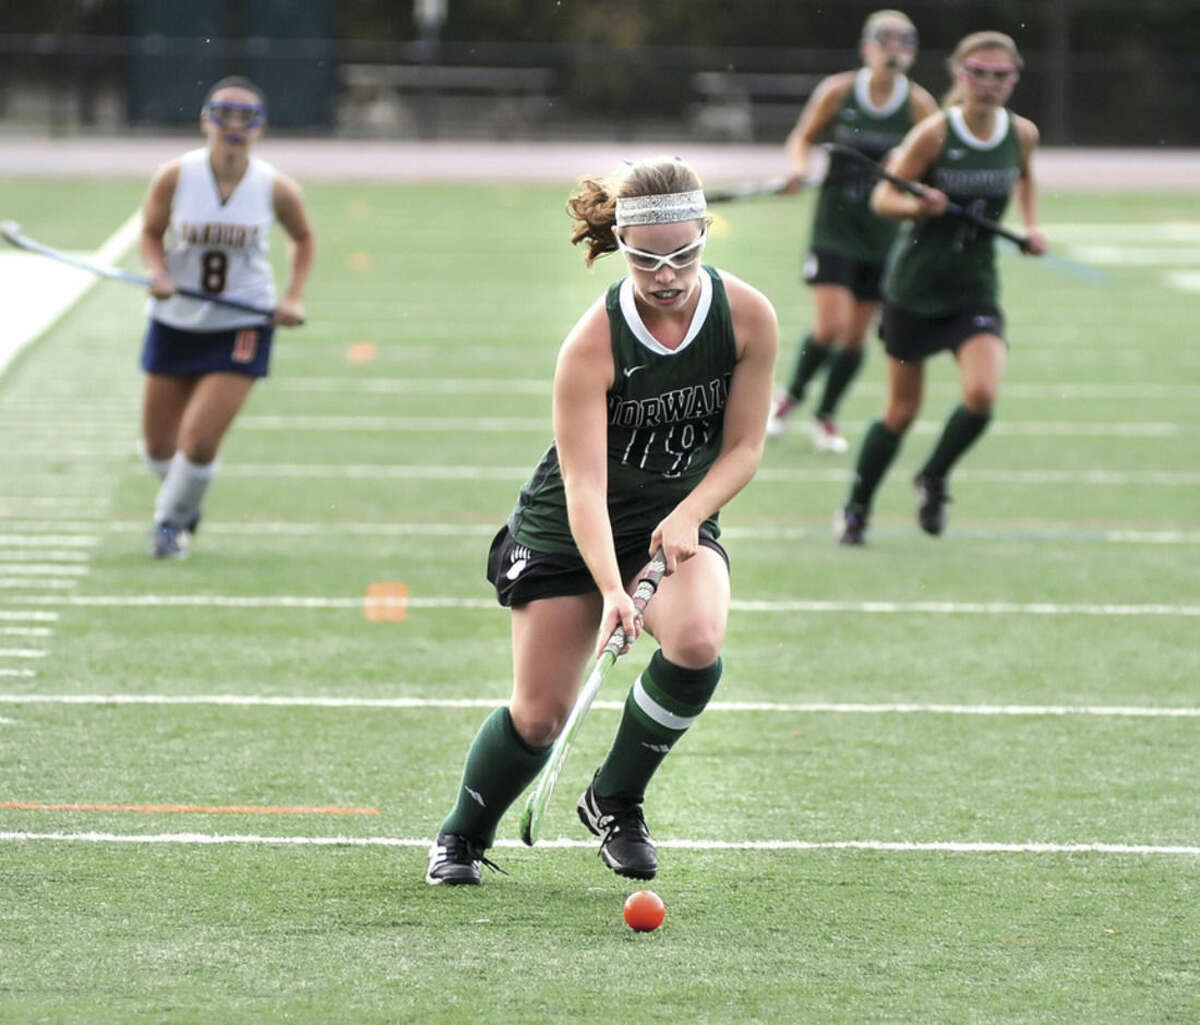 Hour photo/John Nash Norwalk High School senior Allison Hall, front, pushes the ball up the field during Tuesday's game at Danbury High School. Hall is one of three senior captains for the Bears, who are on the cusp of their first FCIAC tournament appearance in three seasons.